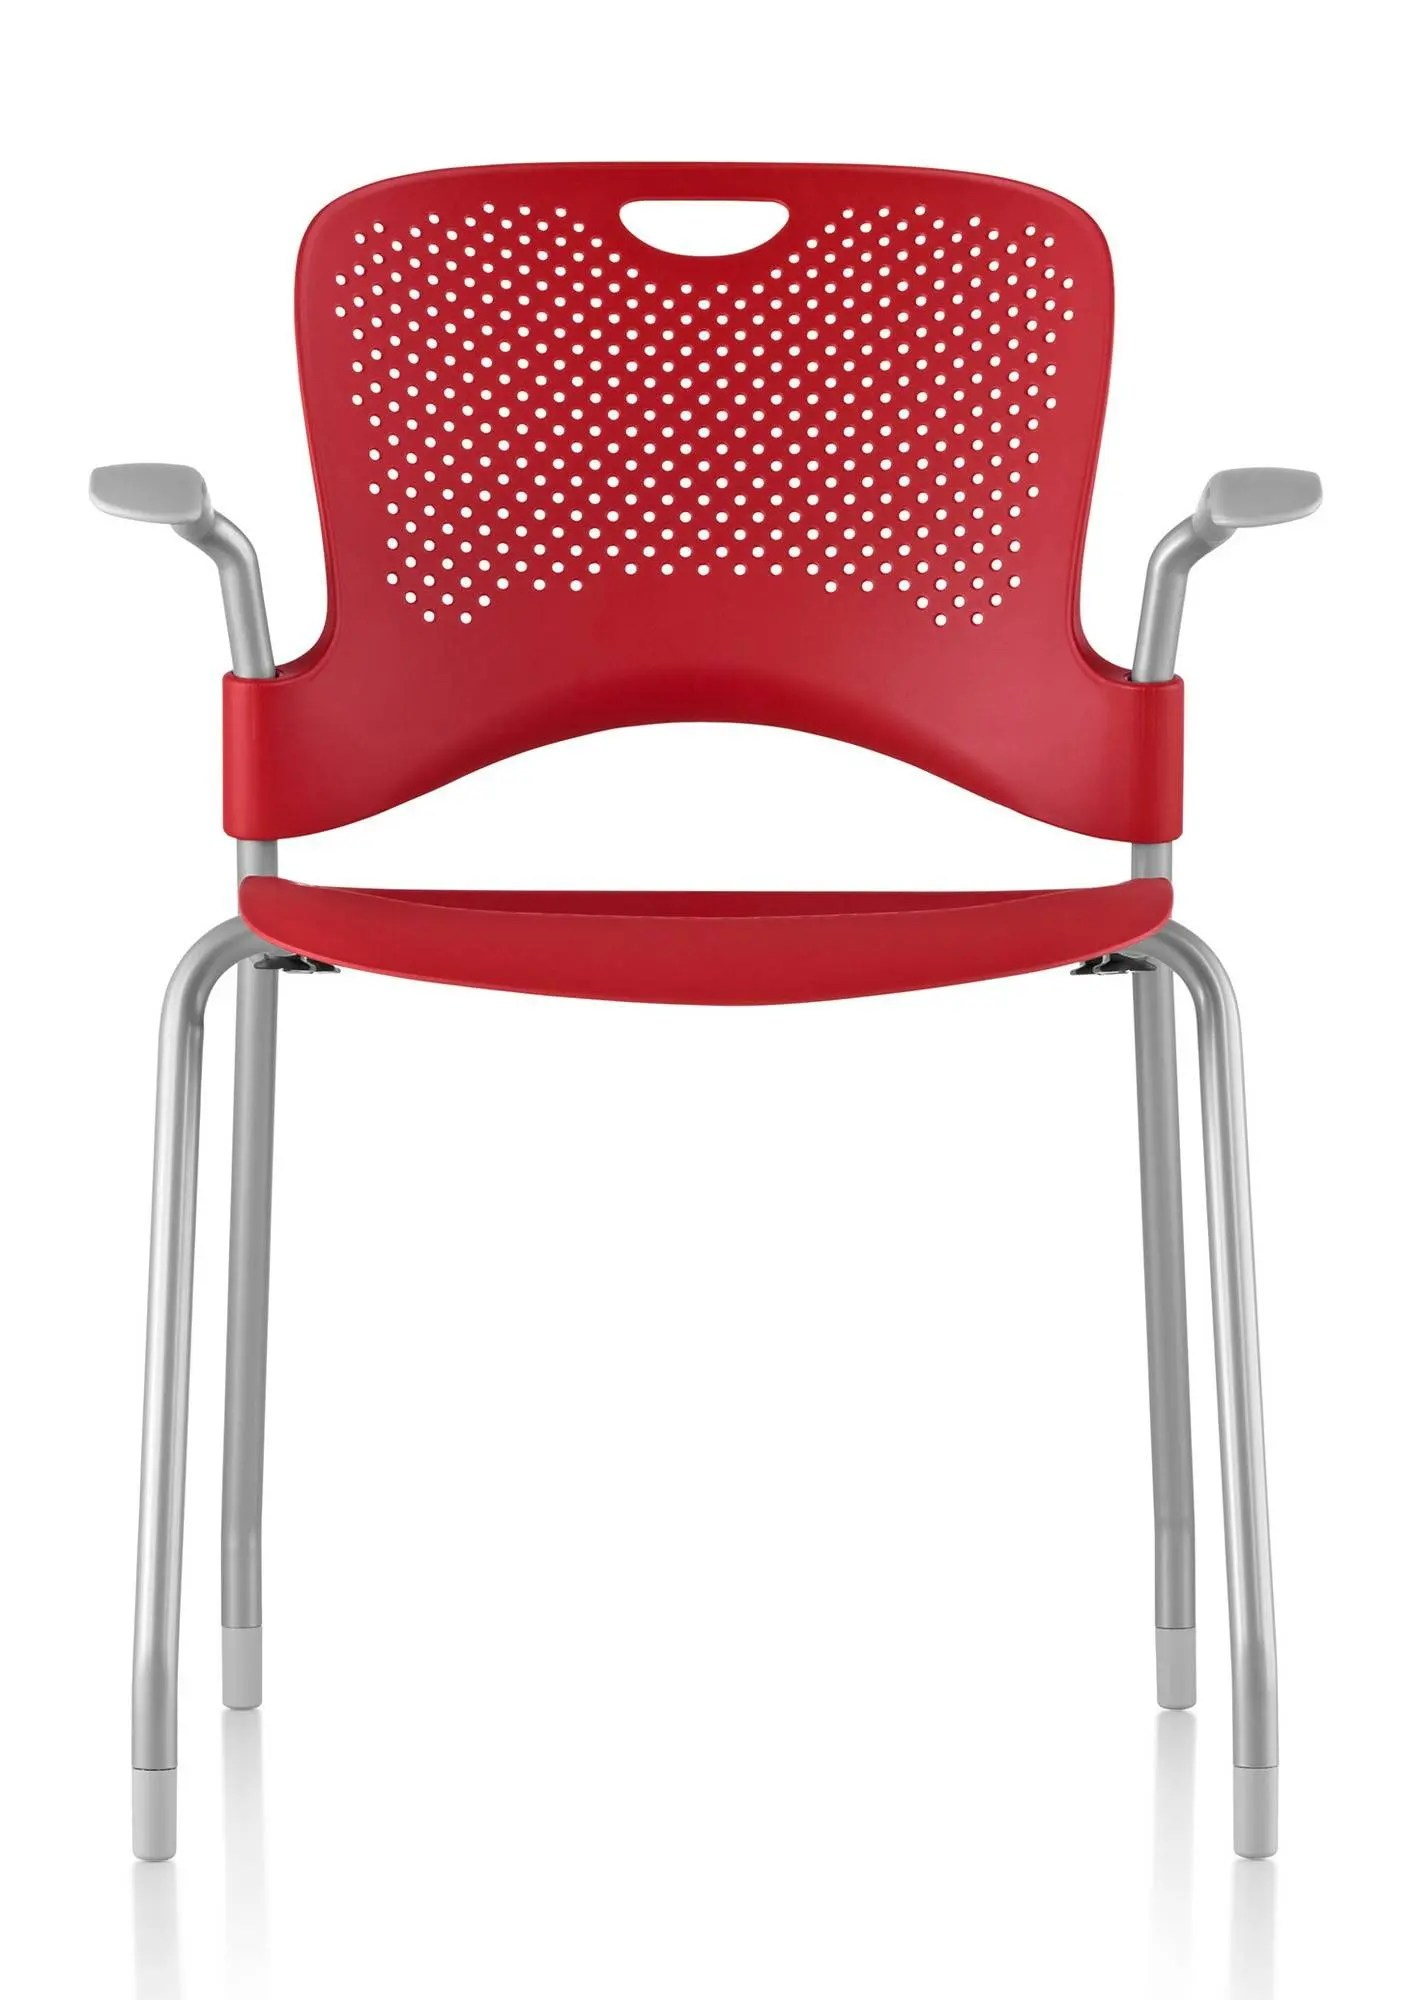 herman miller stacking chairs tommy bahama beach chair with footrest caper gr shop canada